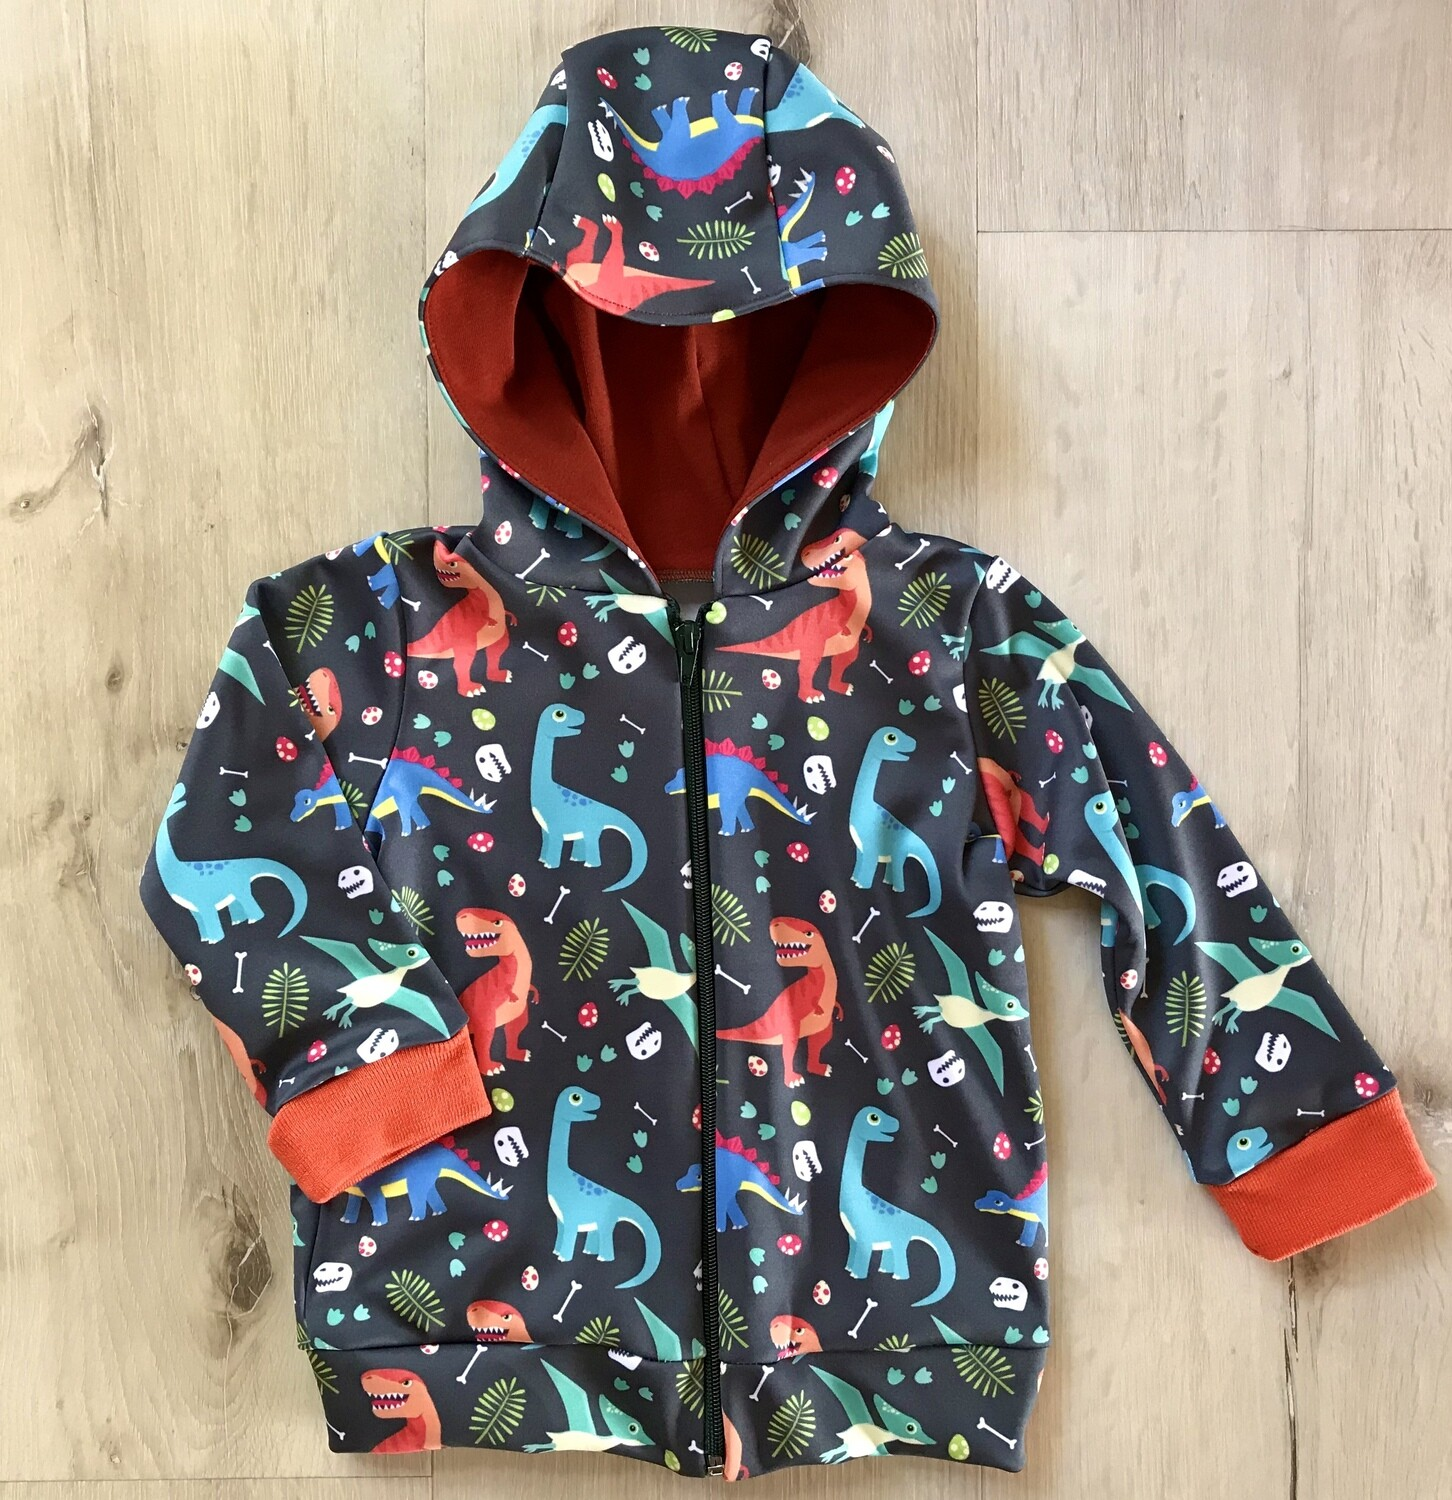 Dino softshell jacket